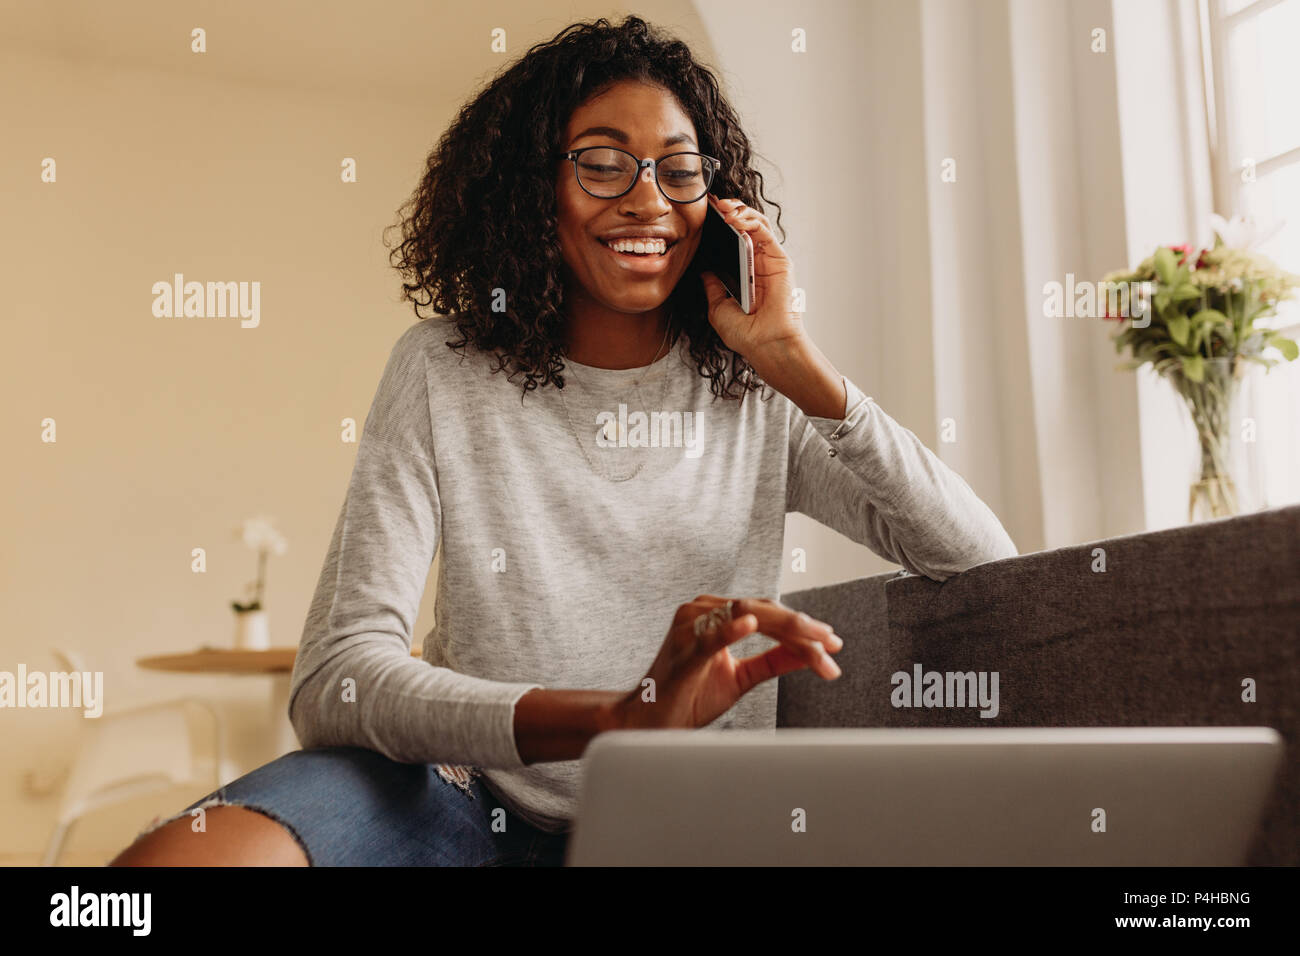 Businesswoman sitting on sofa at home and talking over mobile phone while working on laptop. Smiling woman in fashionable torn jeans working on laptop - Stock Image